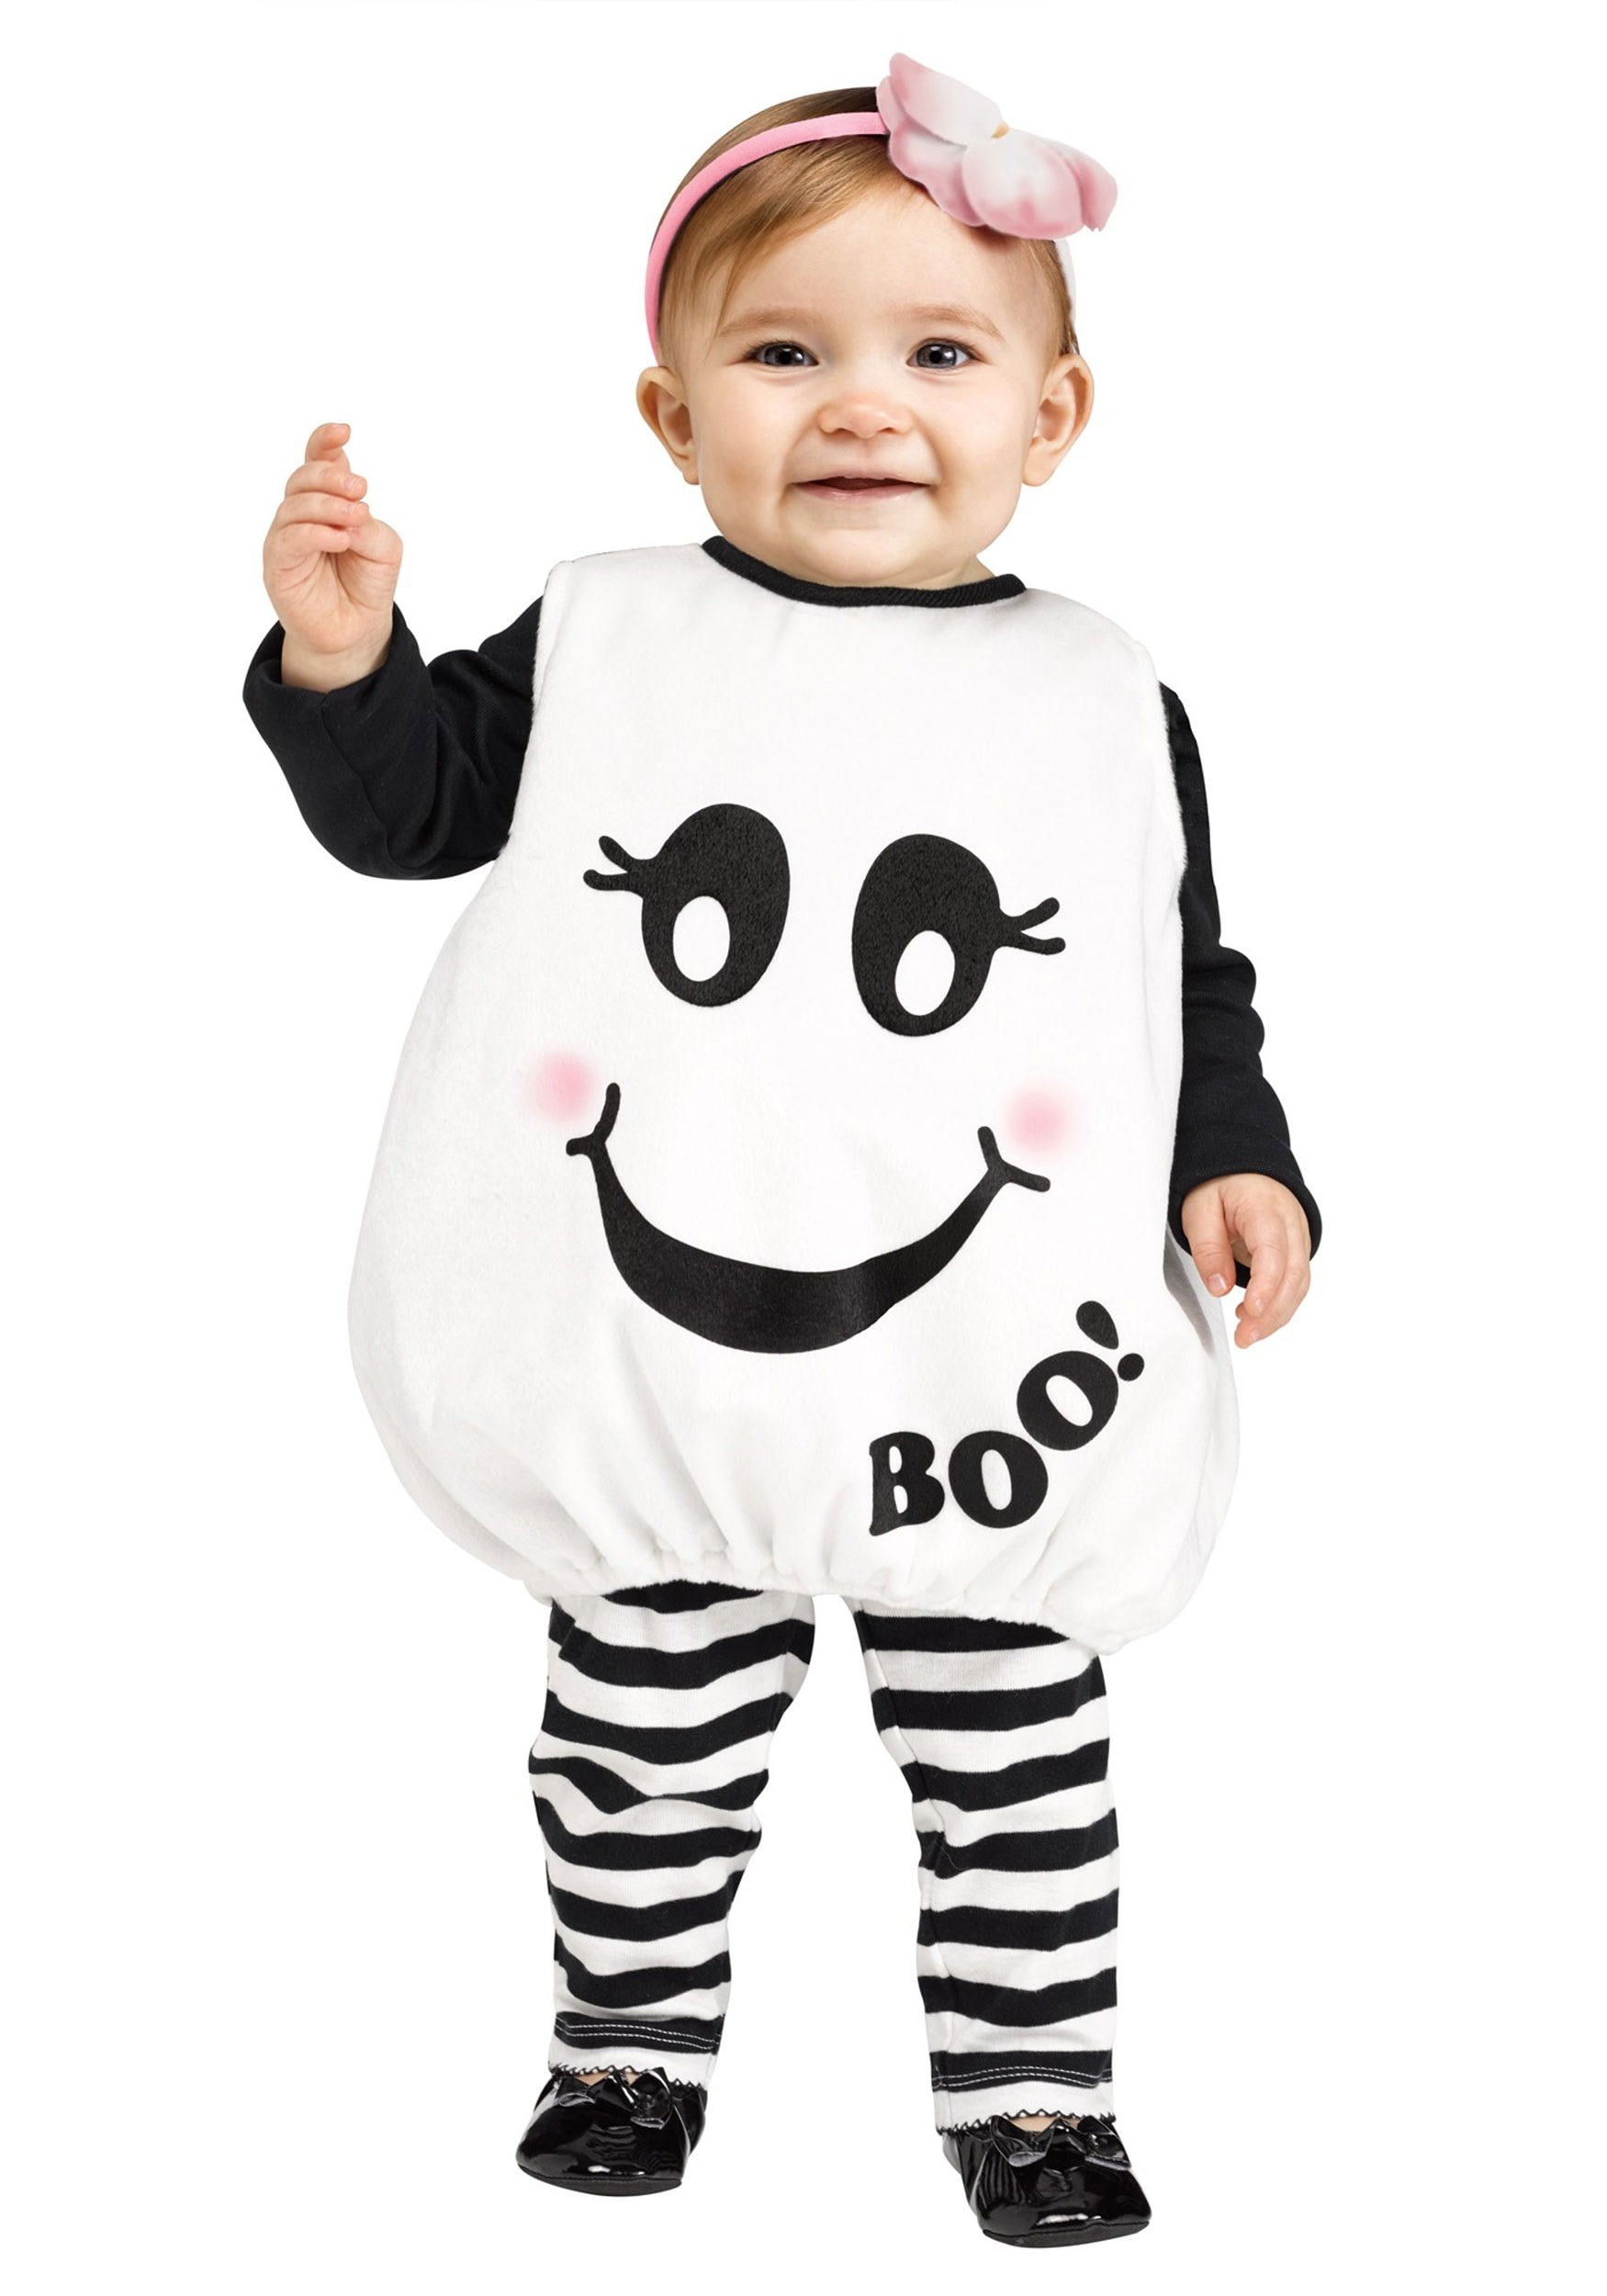 Toddler Baby Boo Ghost Costume-7876